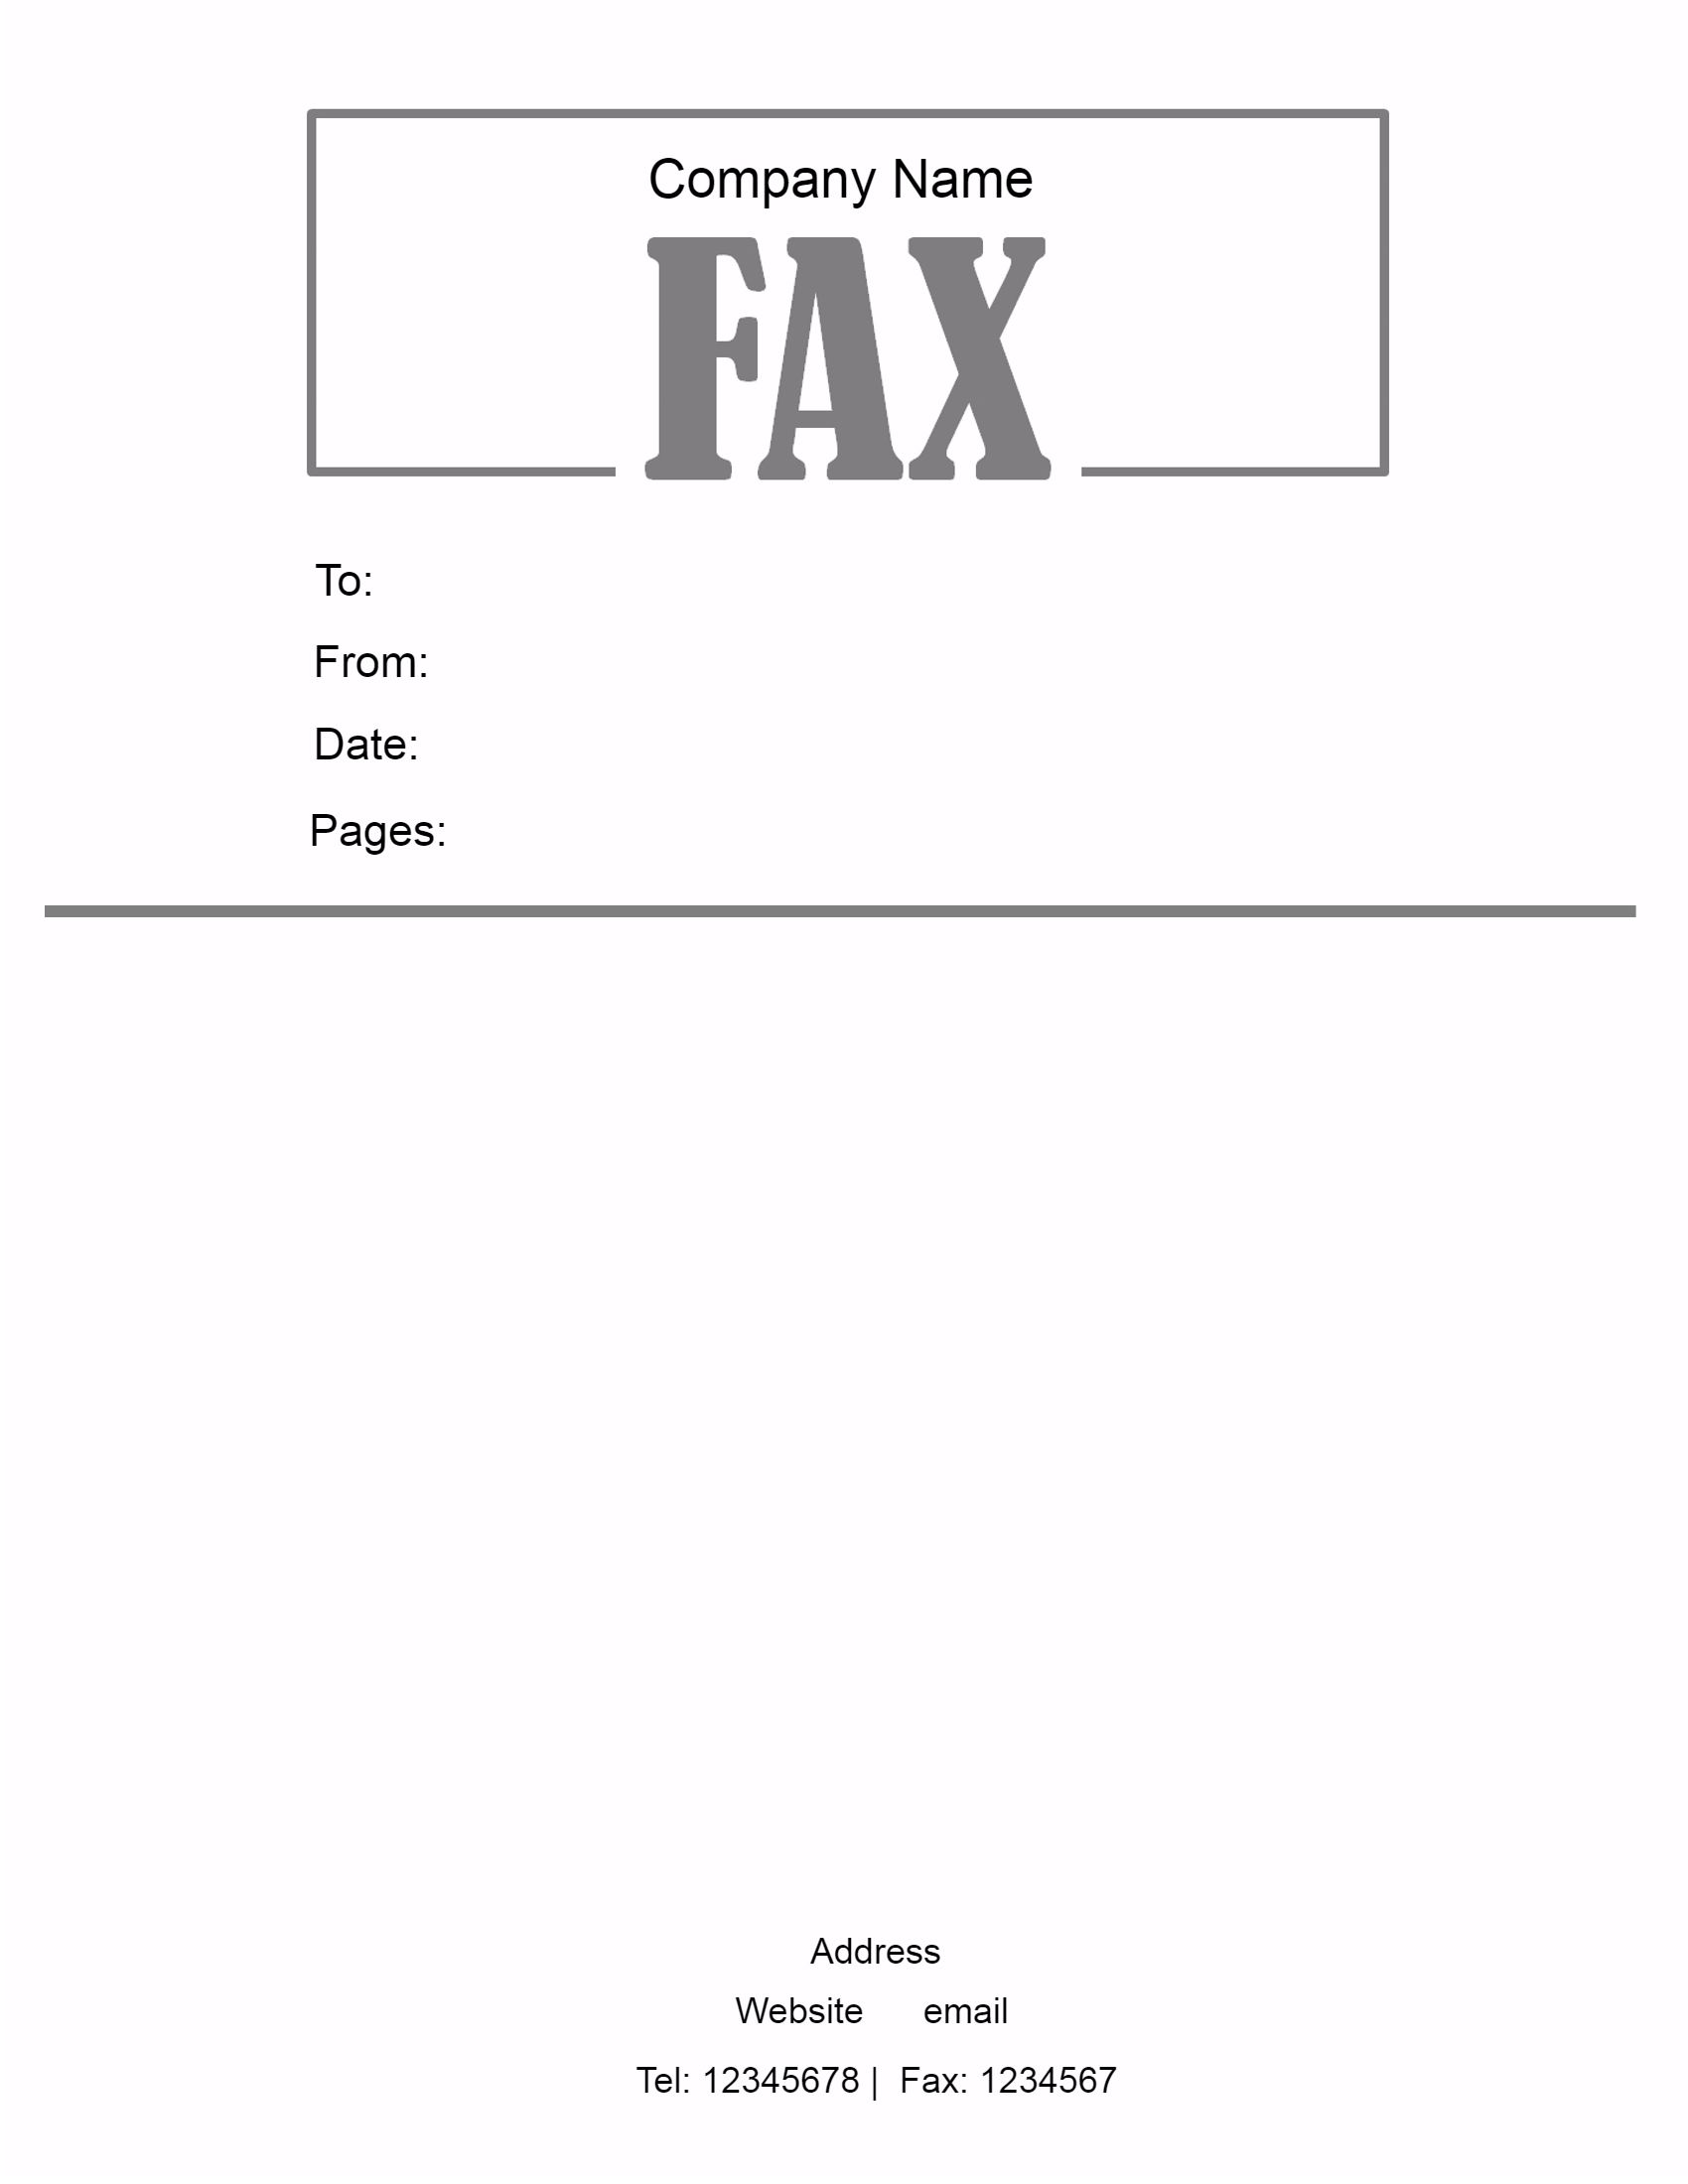 Fax Cover Sheet Online – Fax Cover Sheet Pdf